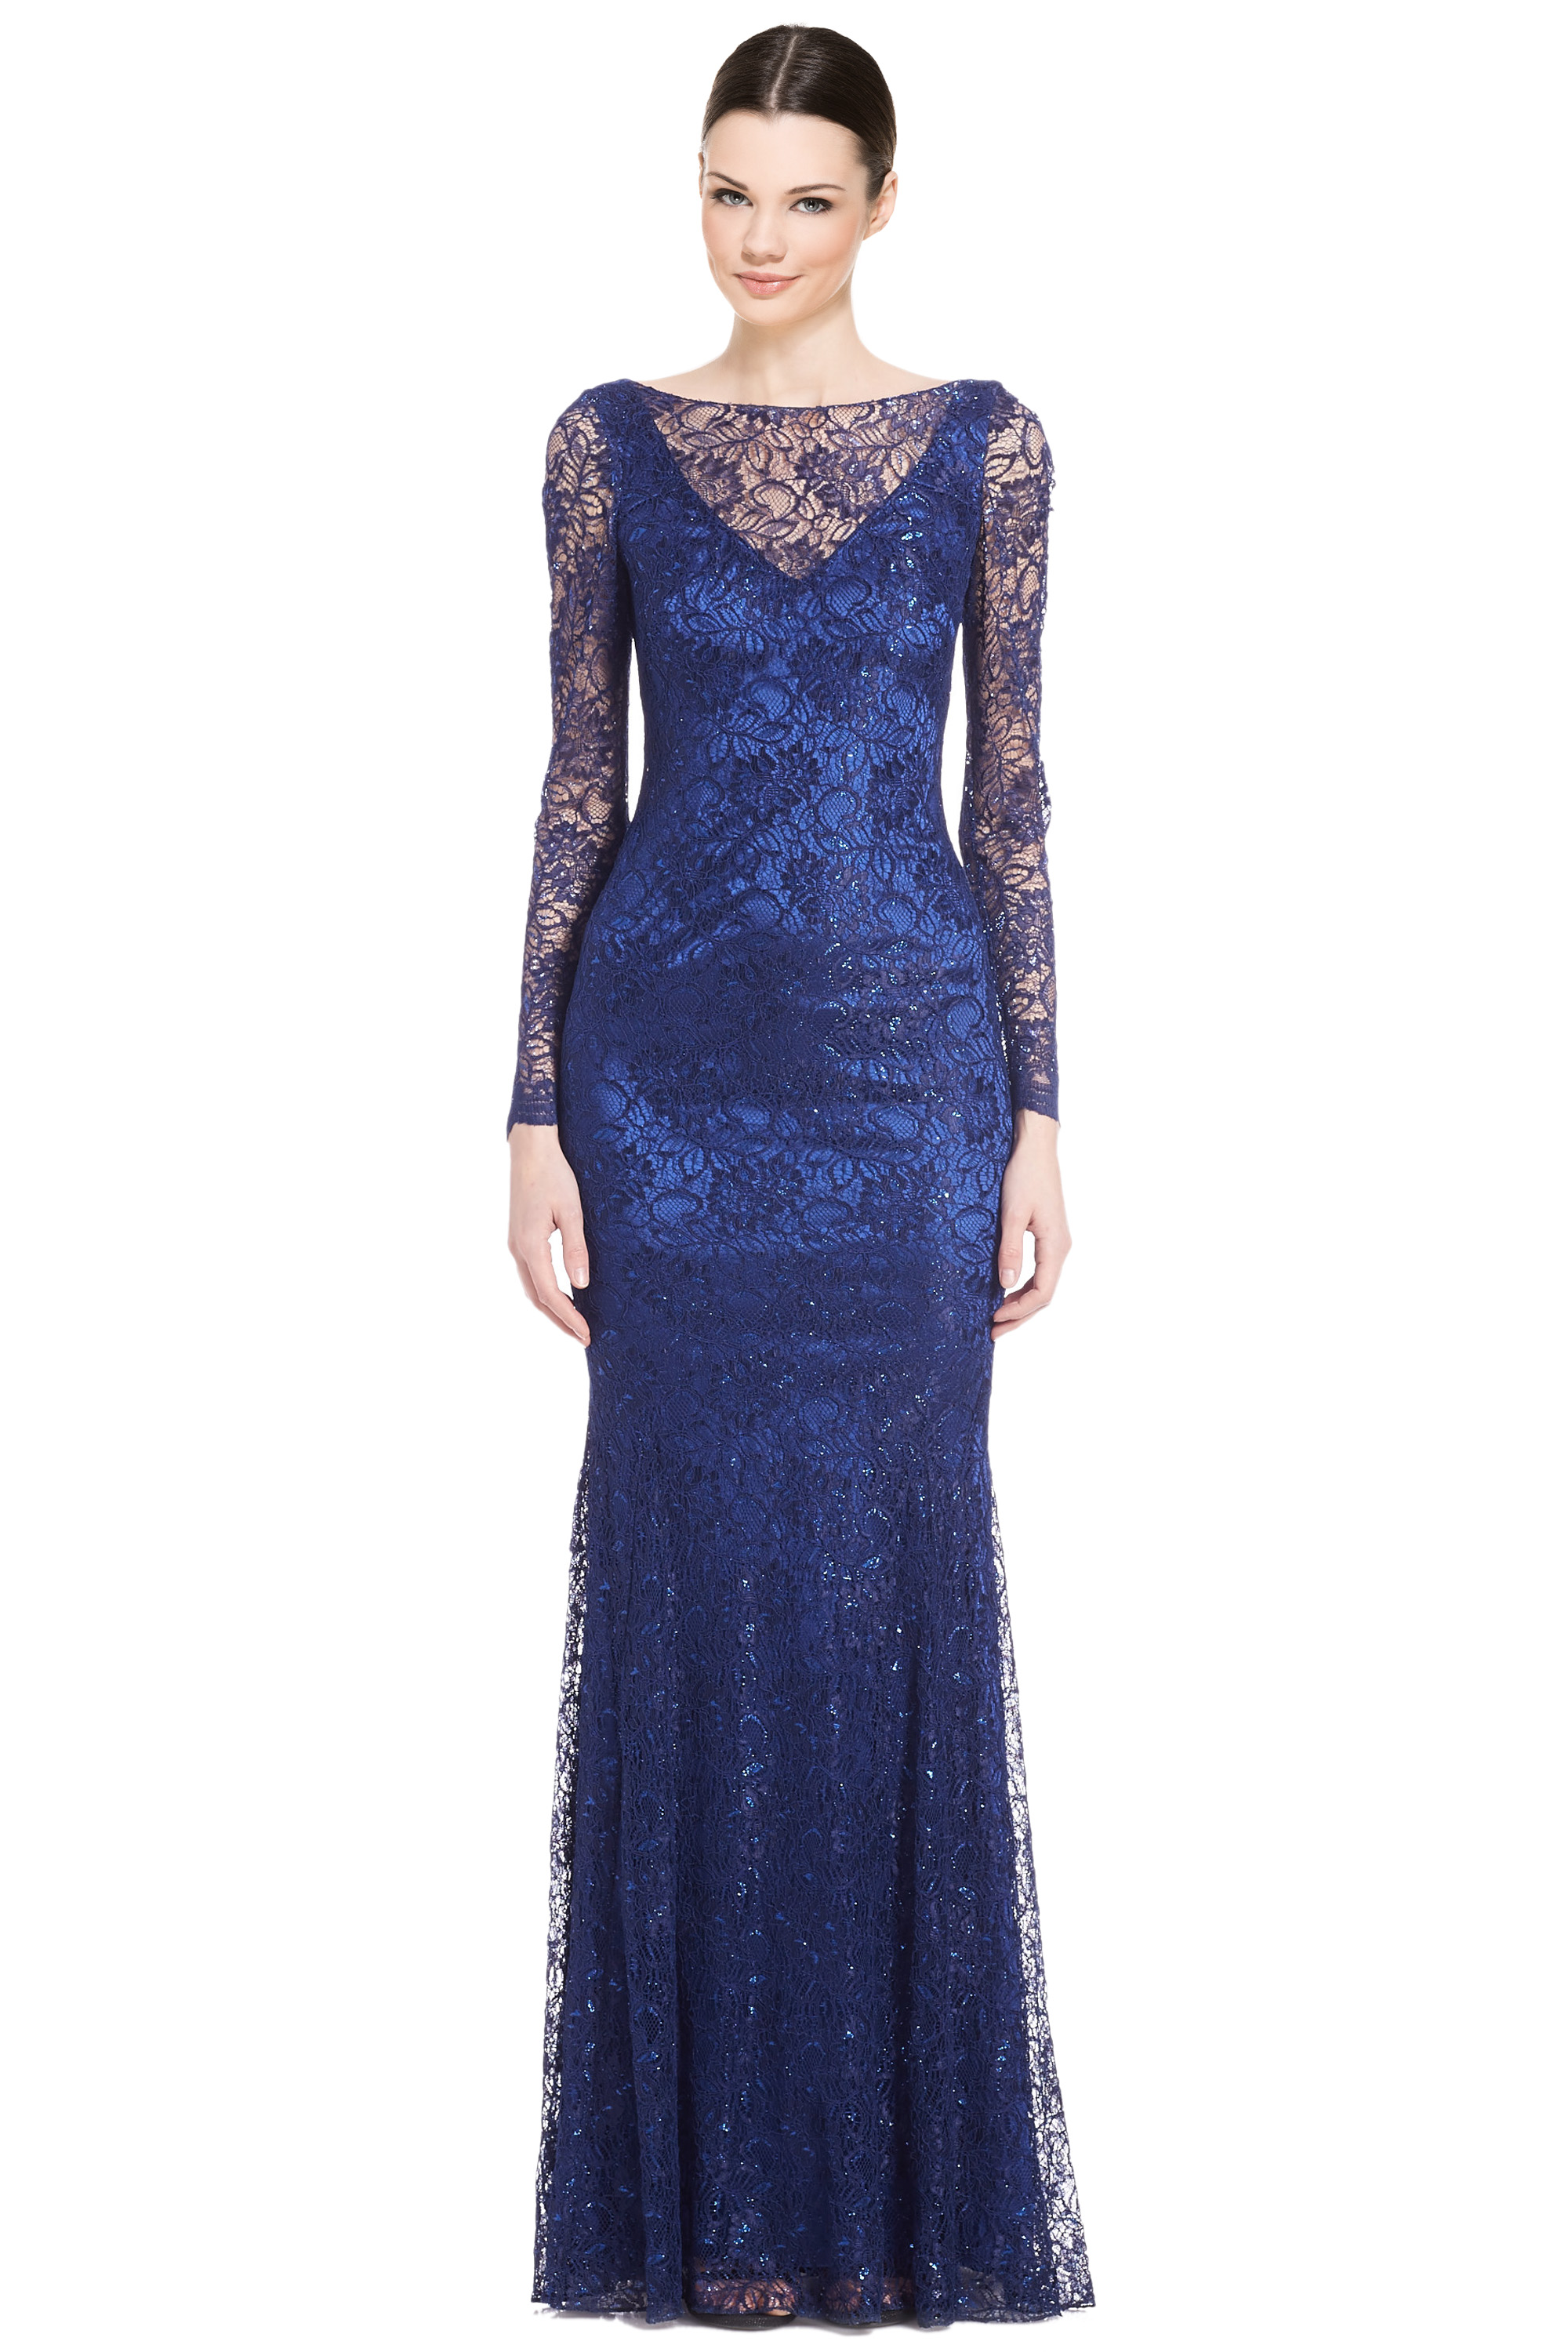 f75e0209 Theia Metallic Blue Lace Long Sleeve Evening Gown Dress 12 ...